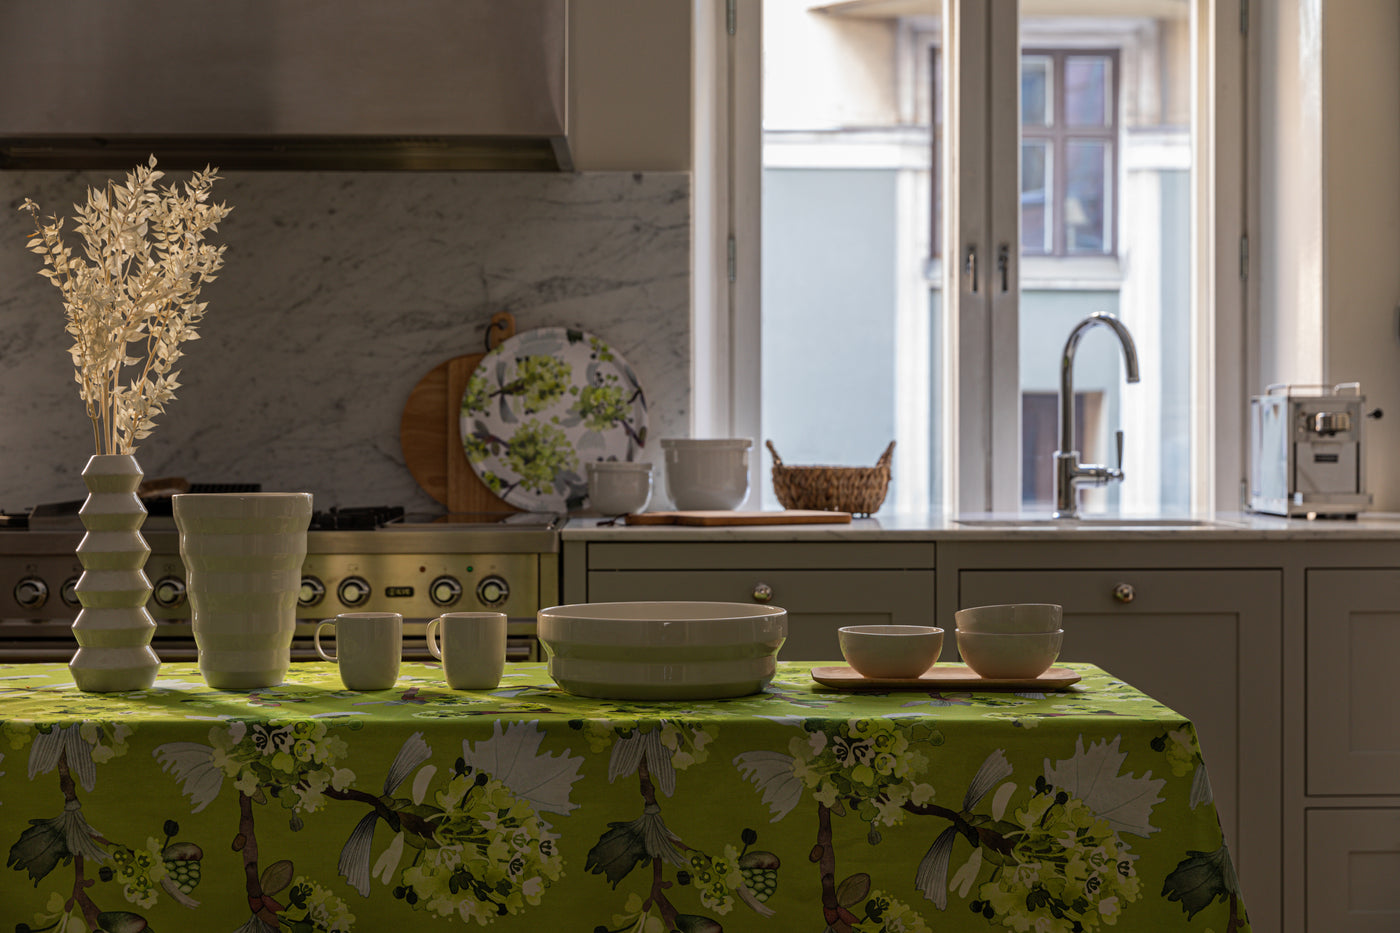 Shop The Look: Let the spring sun into the kitchen